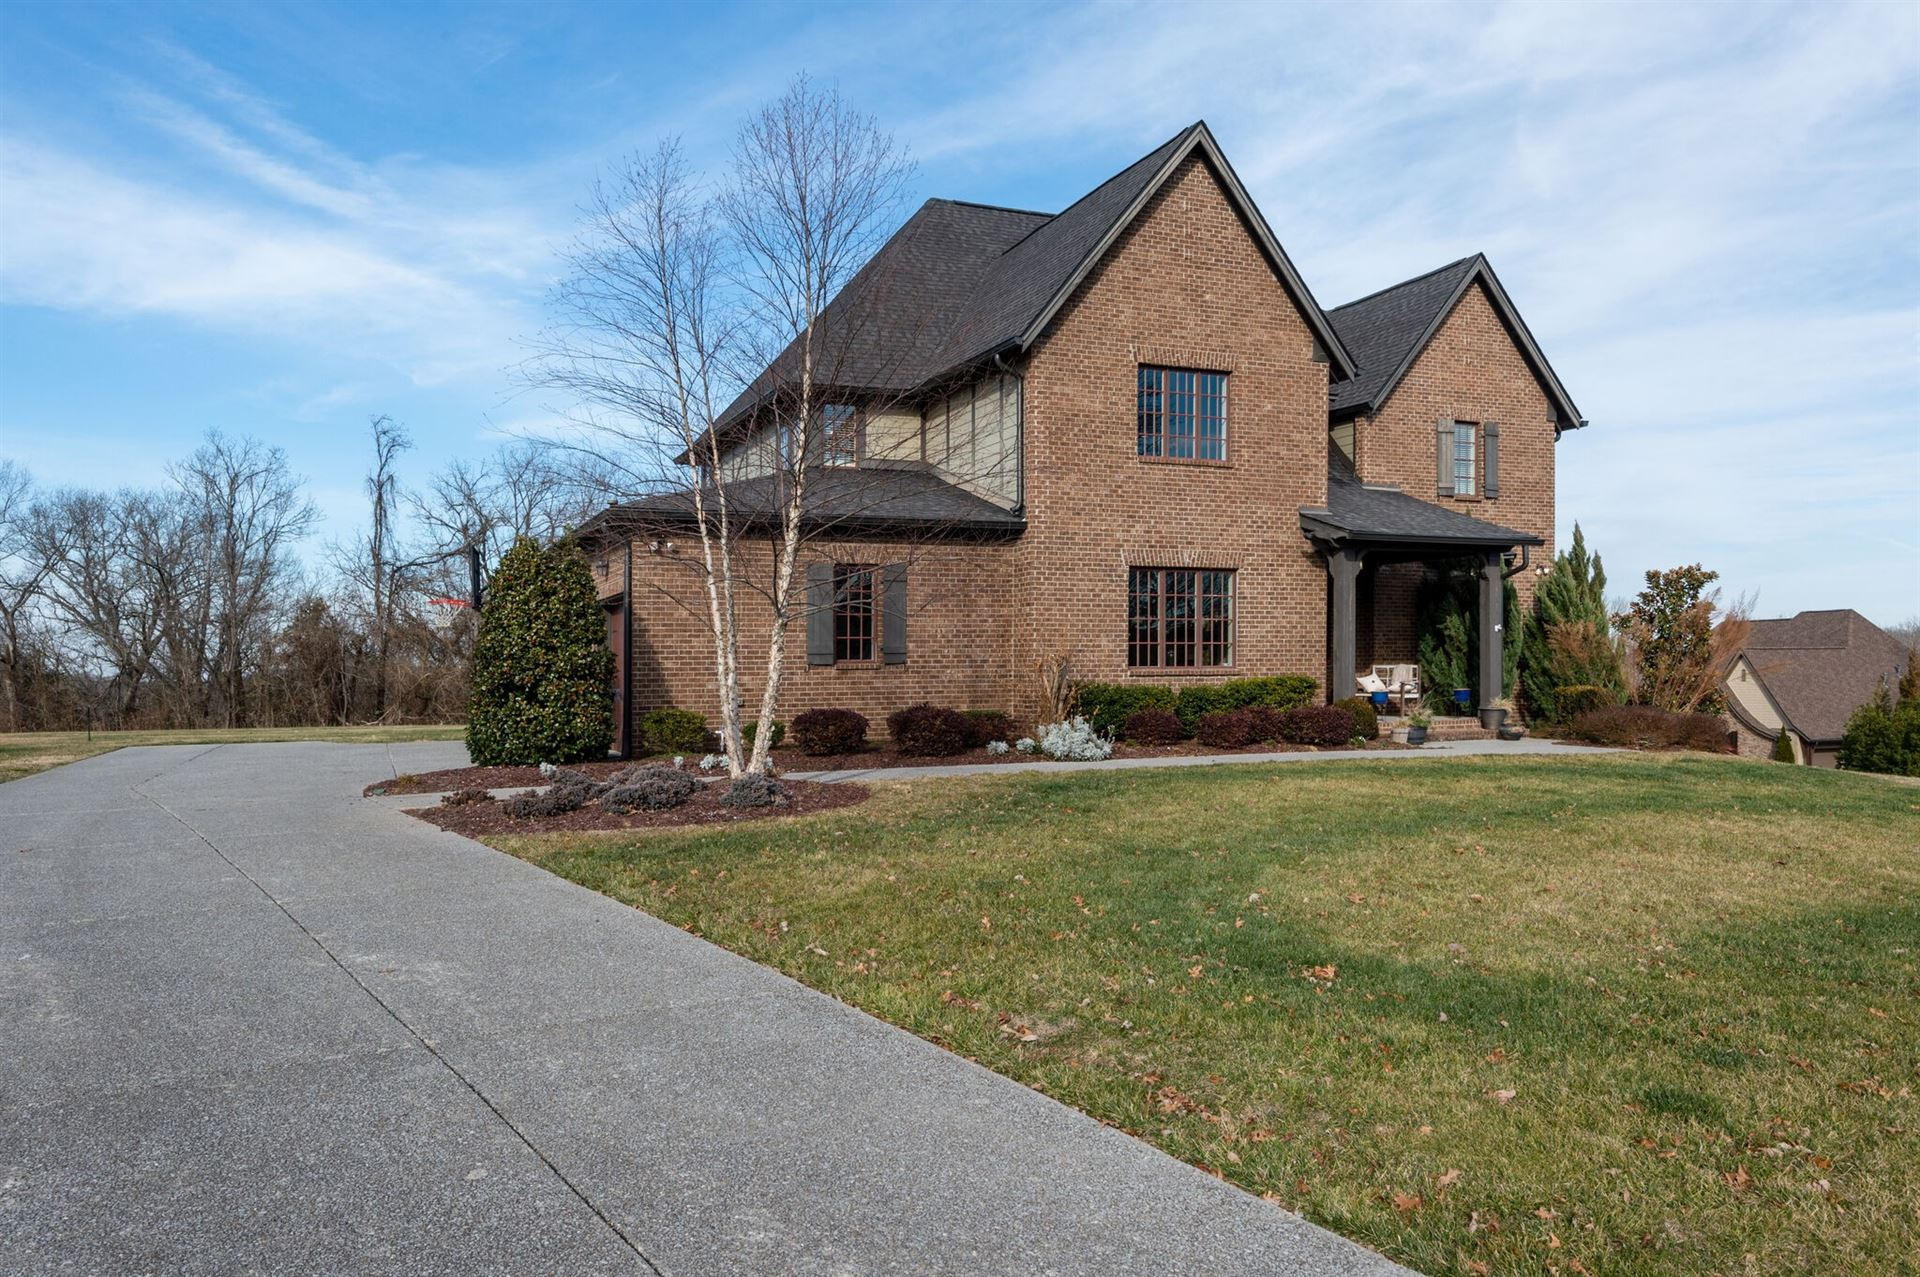 Photo of 1875 Burland Crescent, Brentwood, TN 37027 (MLS # 2221388)